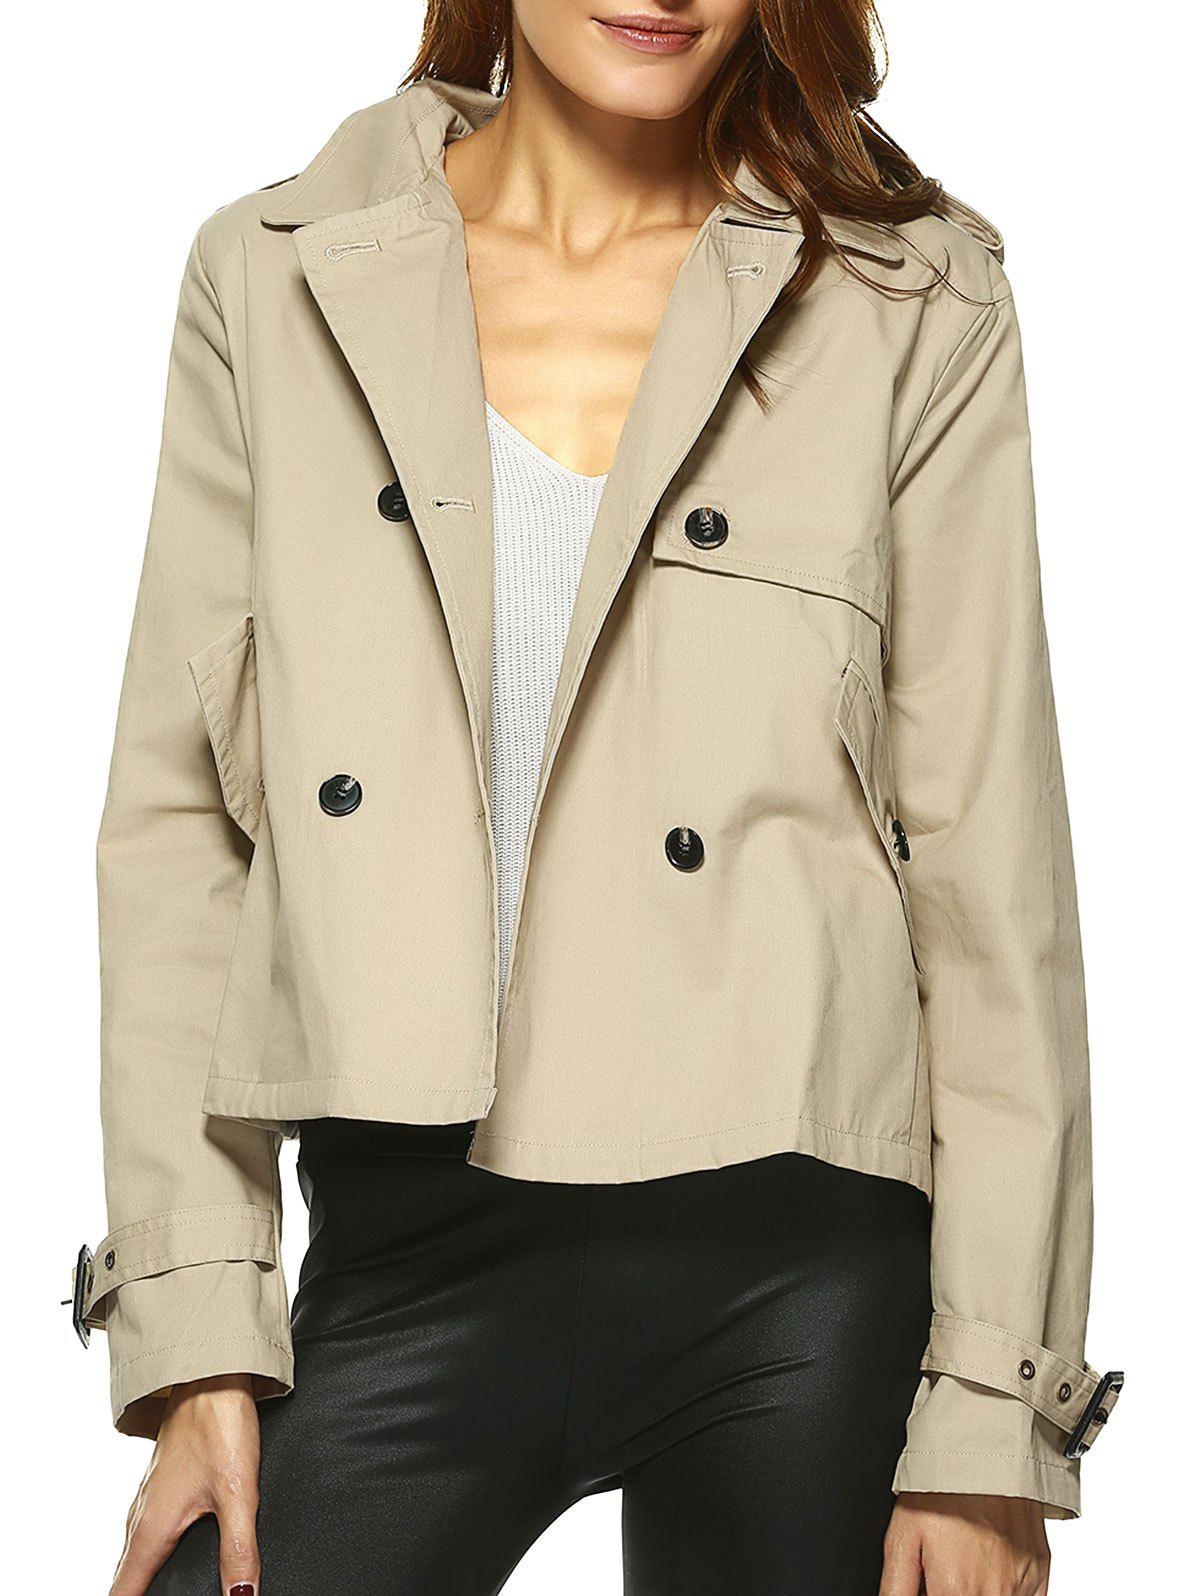 Vintage Double-Breasted Turn Down Collar Loose Trench Jacket - CAMEL 2XL